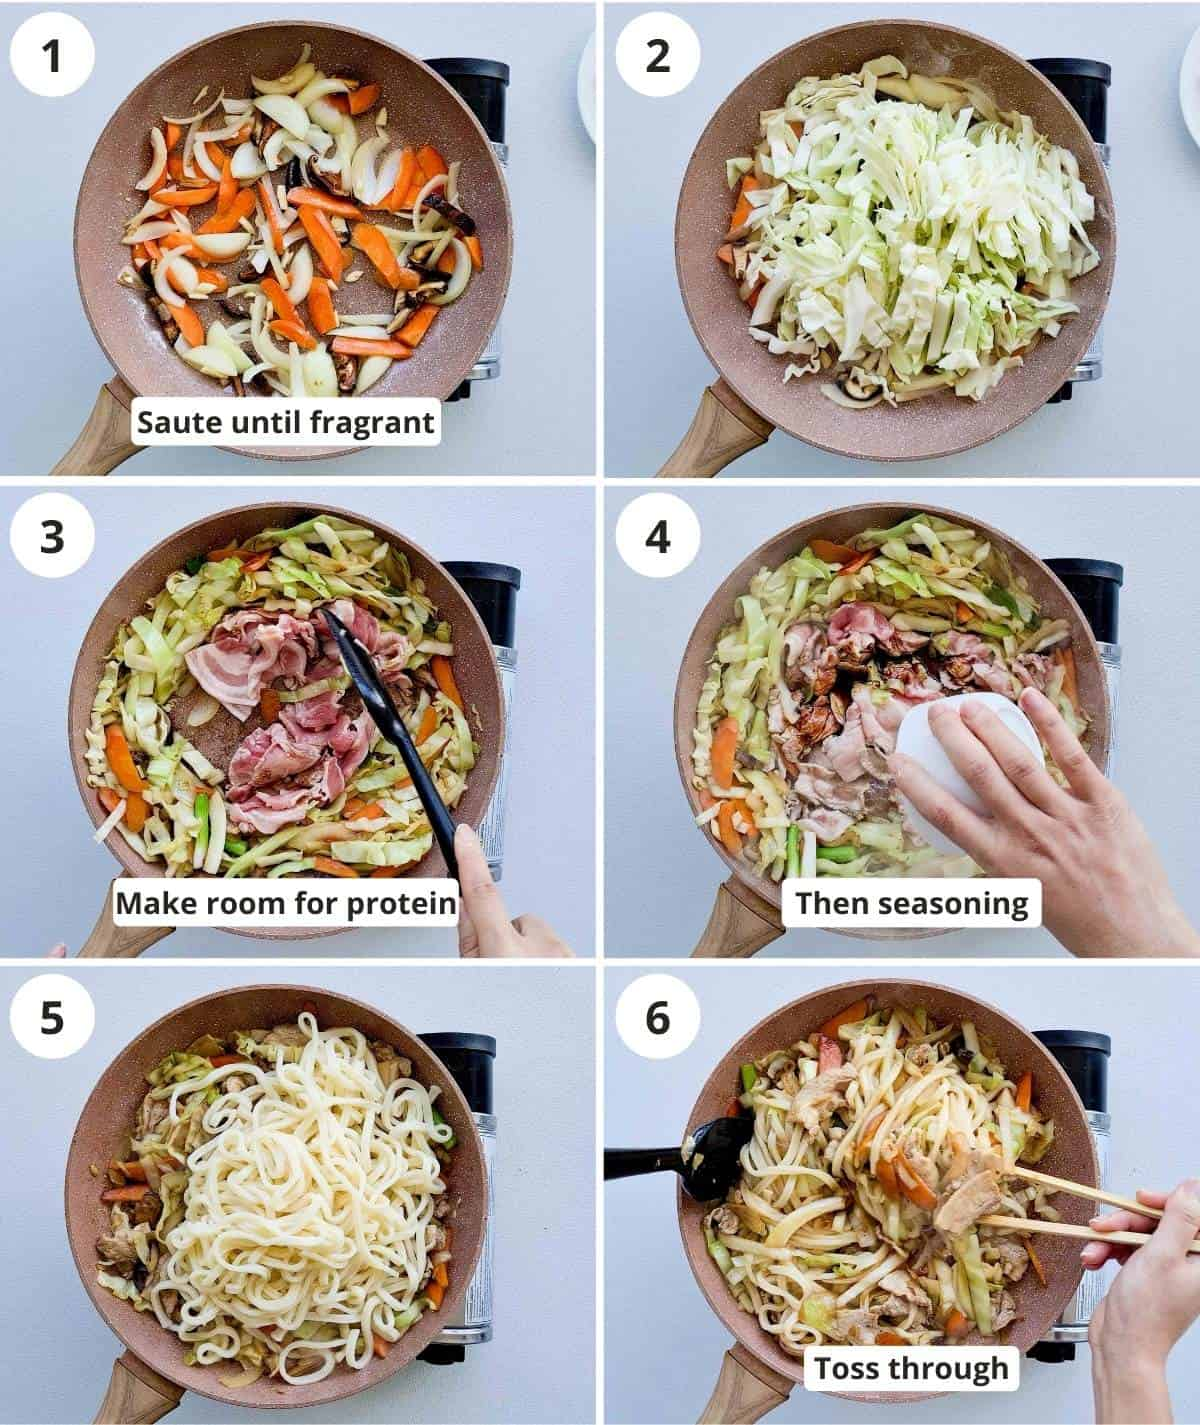 step by step instructions for cooking the yaki udon